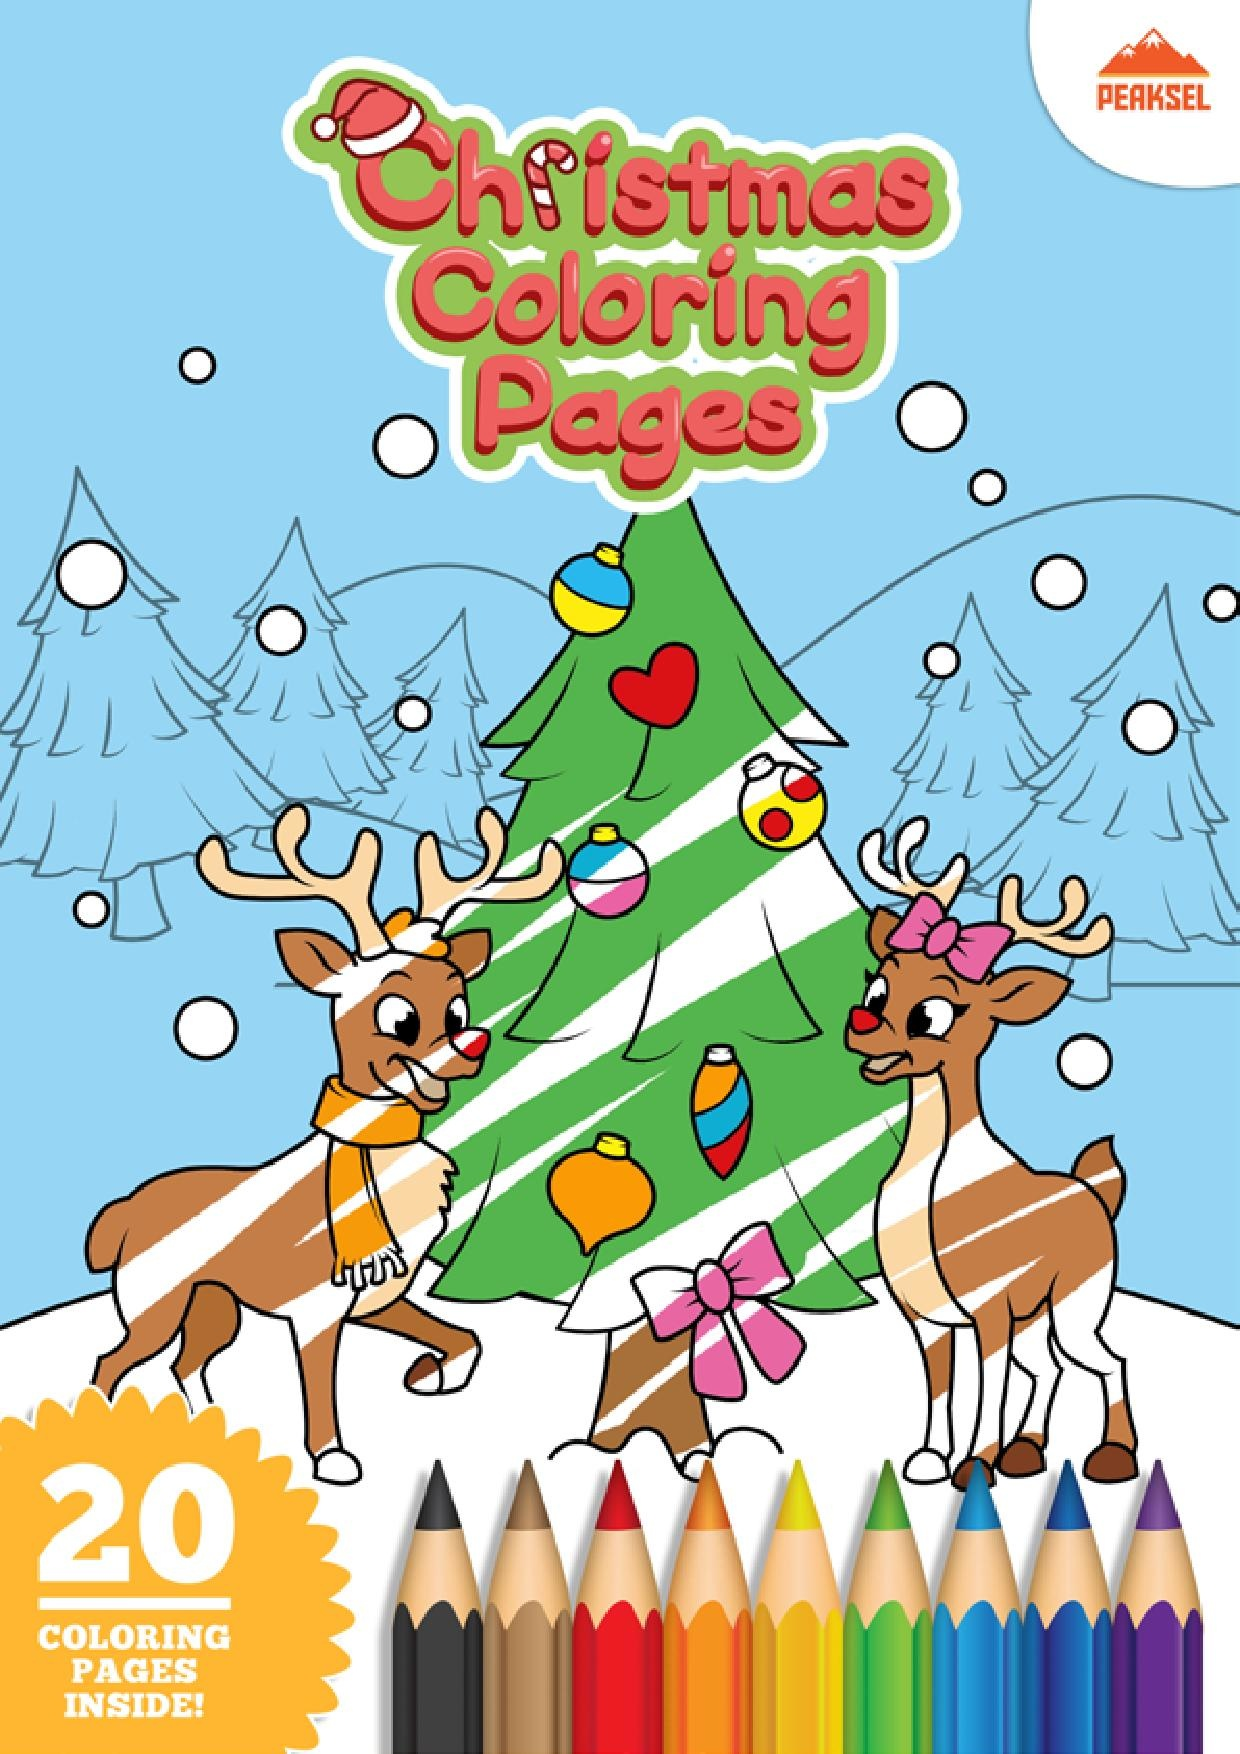 filechristmas coloring pagespdf